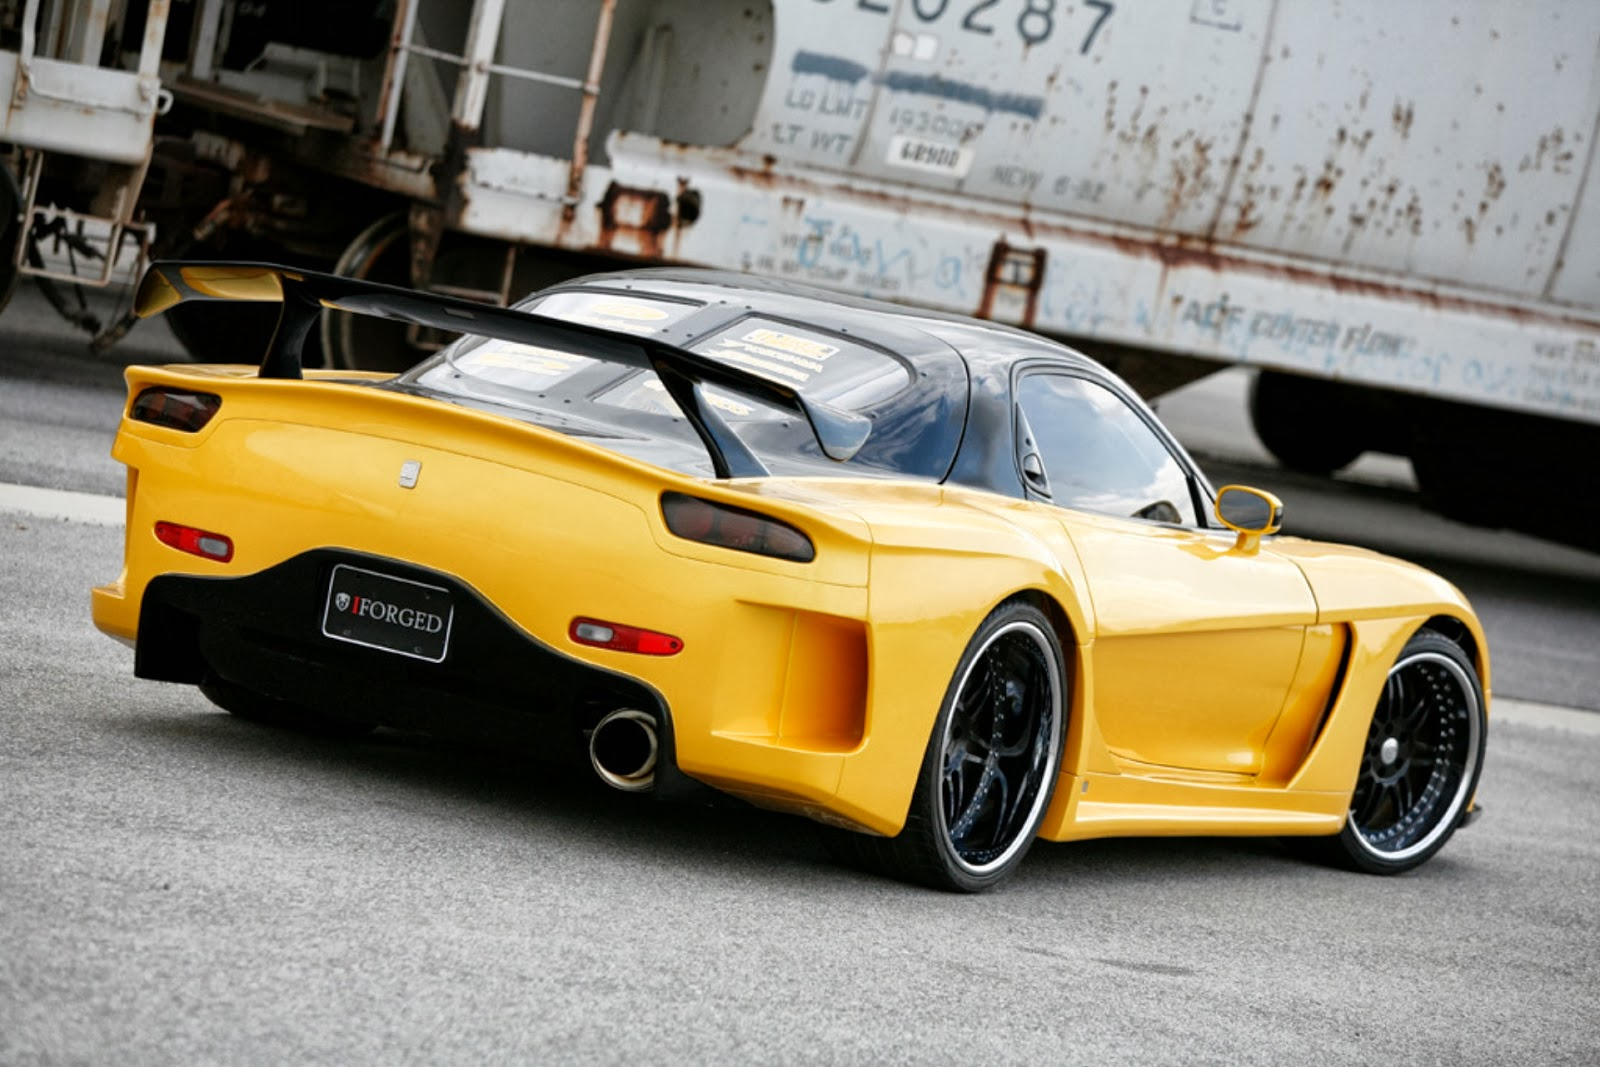 Modified Cars +: VeilSide Mazda iForged RX7 1993